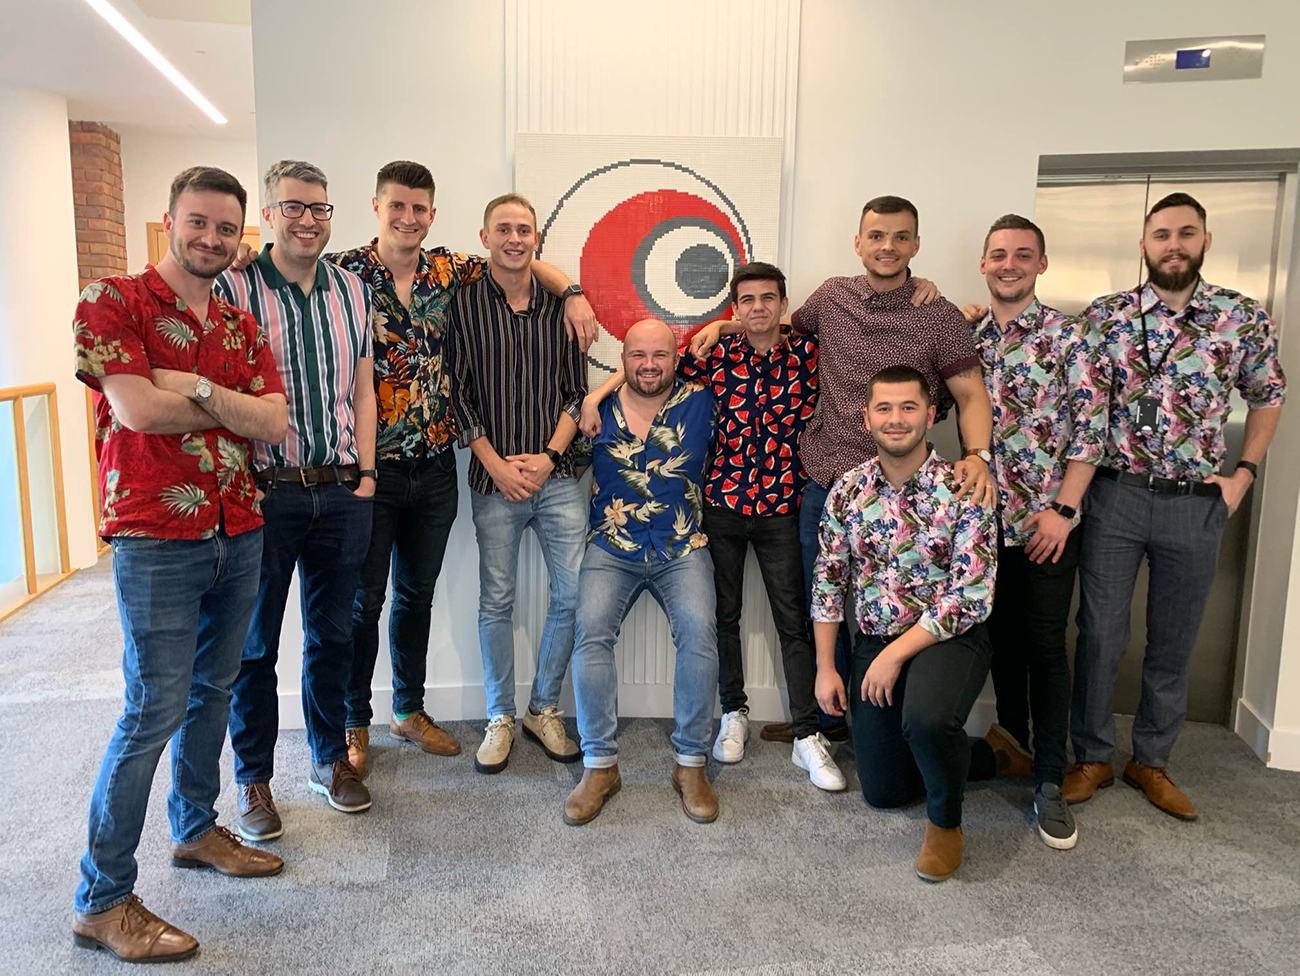 sales-i team in fun shirts in front of sales-i logo.